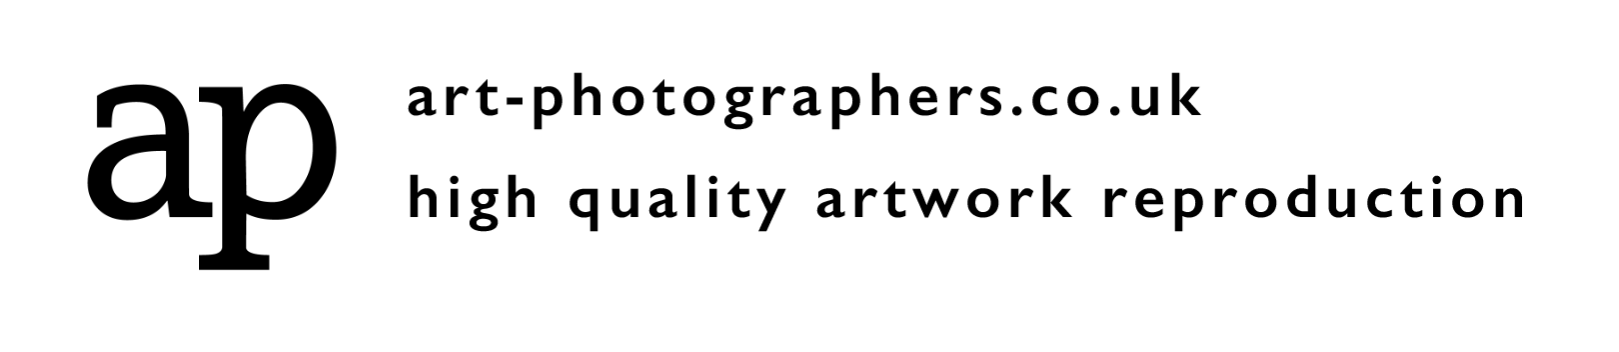 art-photographers.co.uk